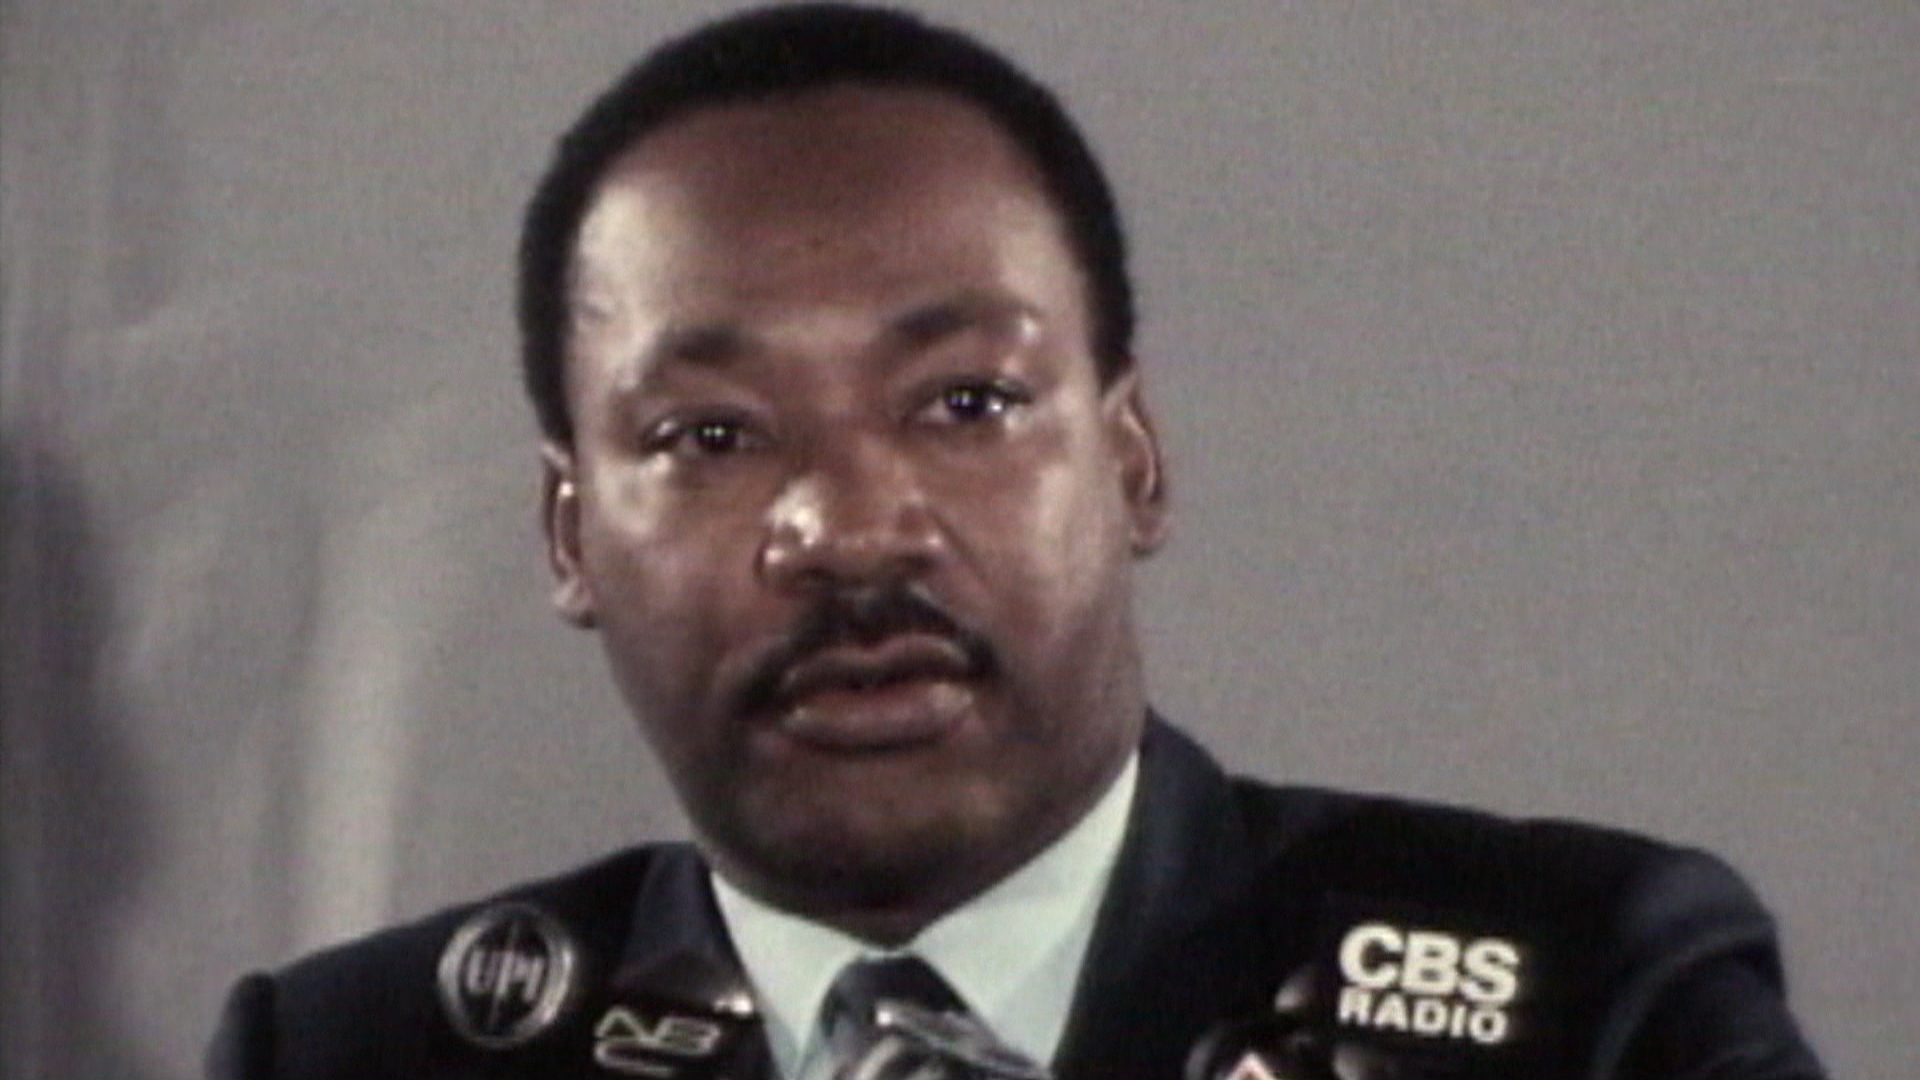 The Martin Luther King Jr. you don't know